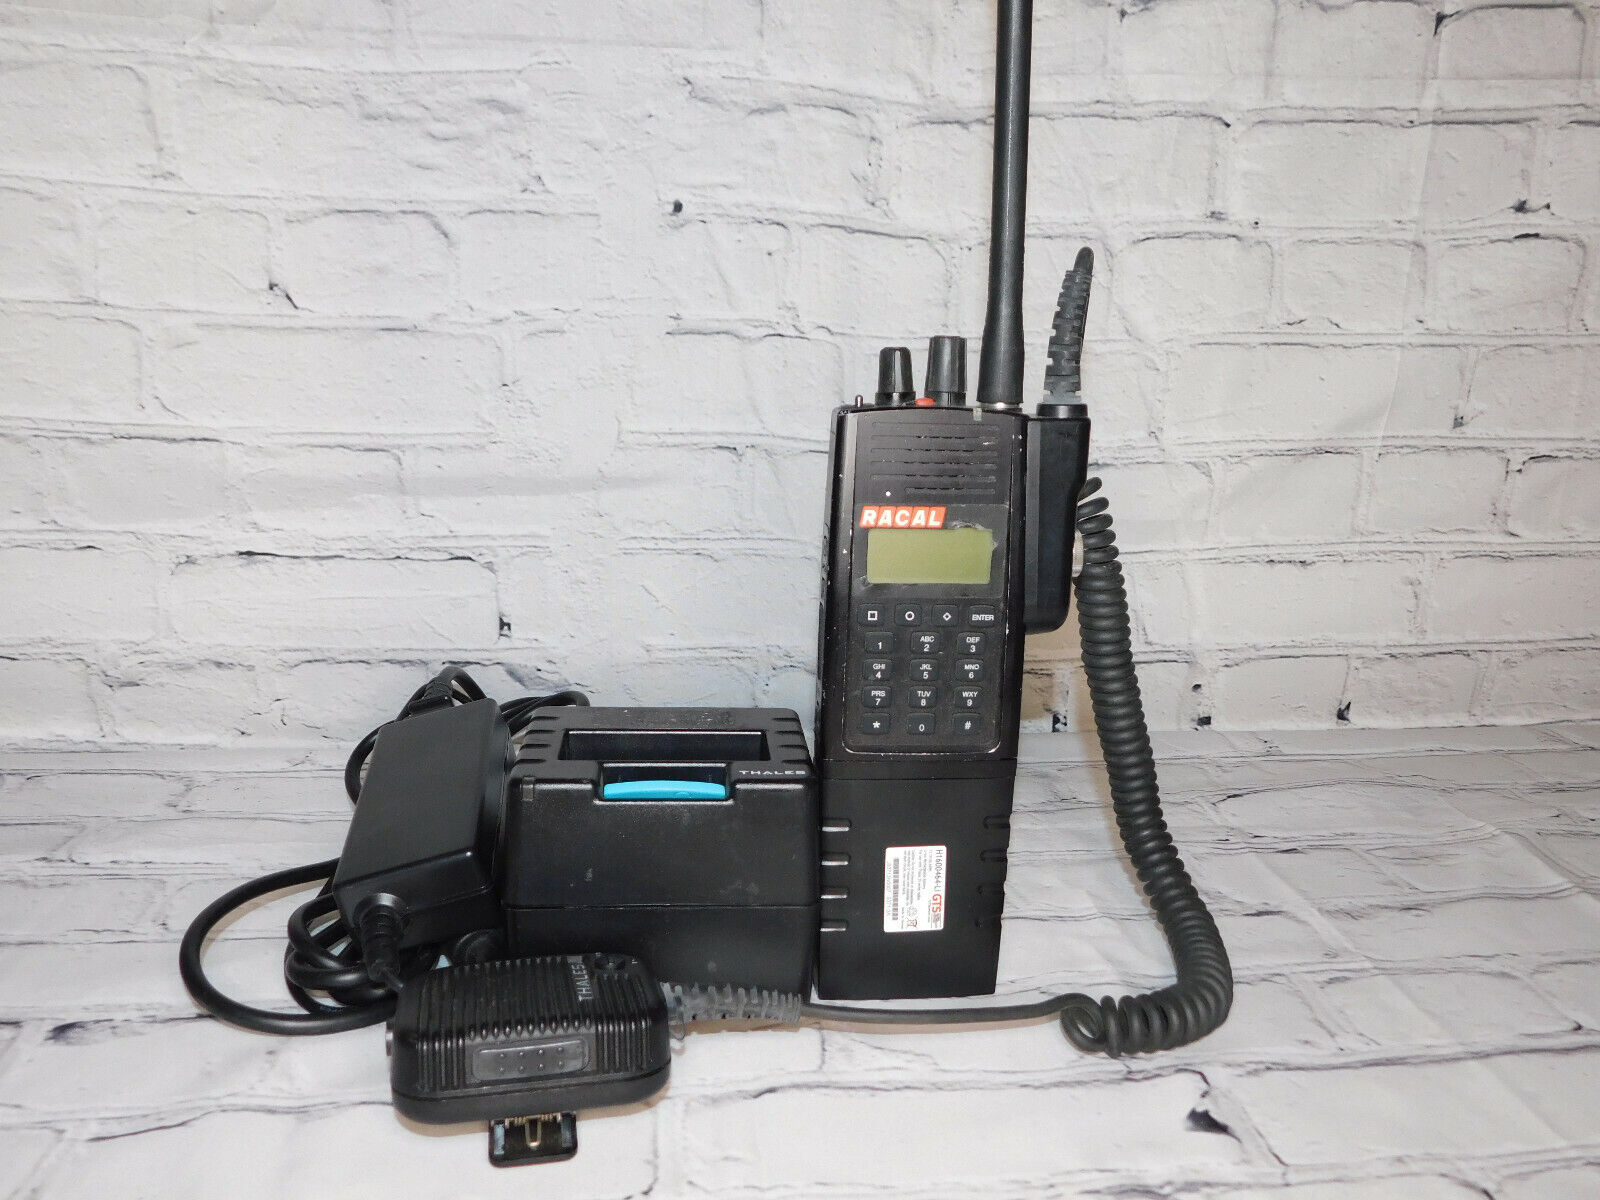 Thales T-25 Racal P25 PRC-6894 FPP Analog/Digital Radio With AES/DES New Battery. Available Now for 225.00